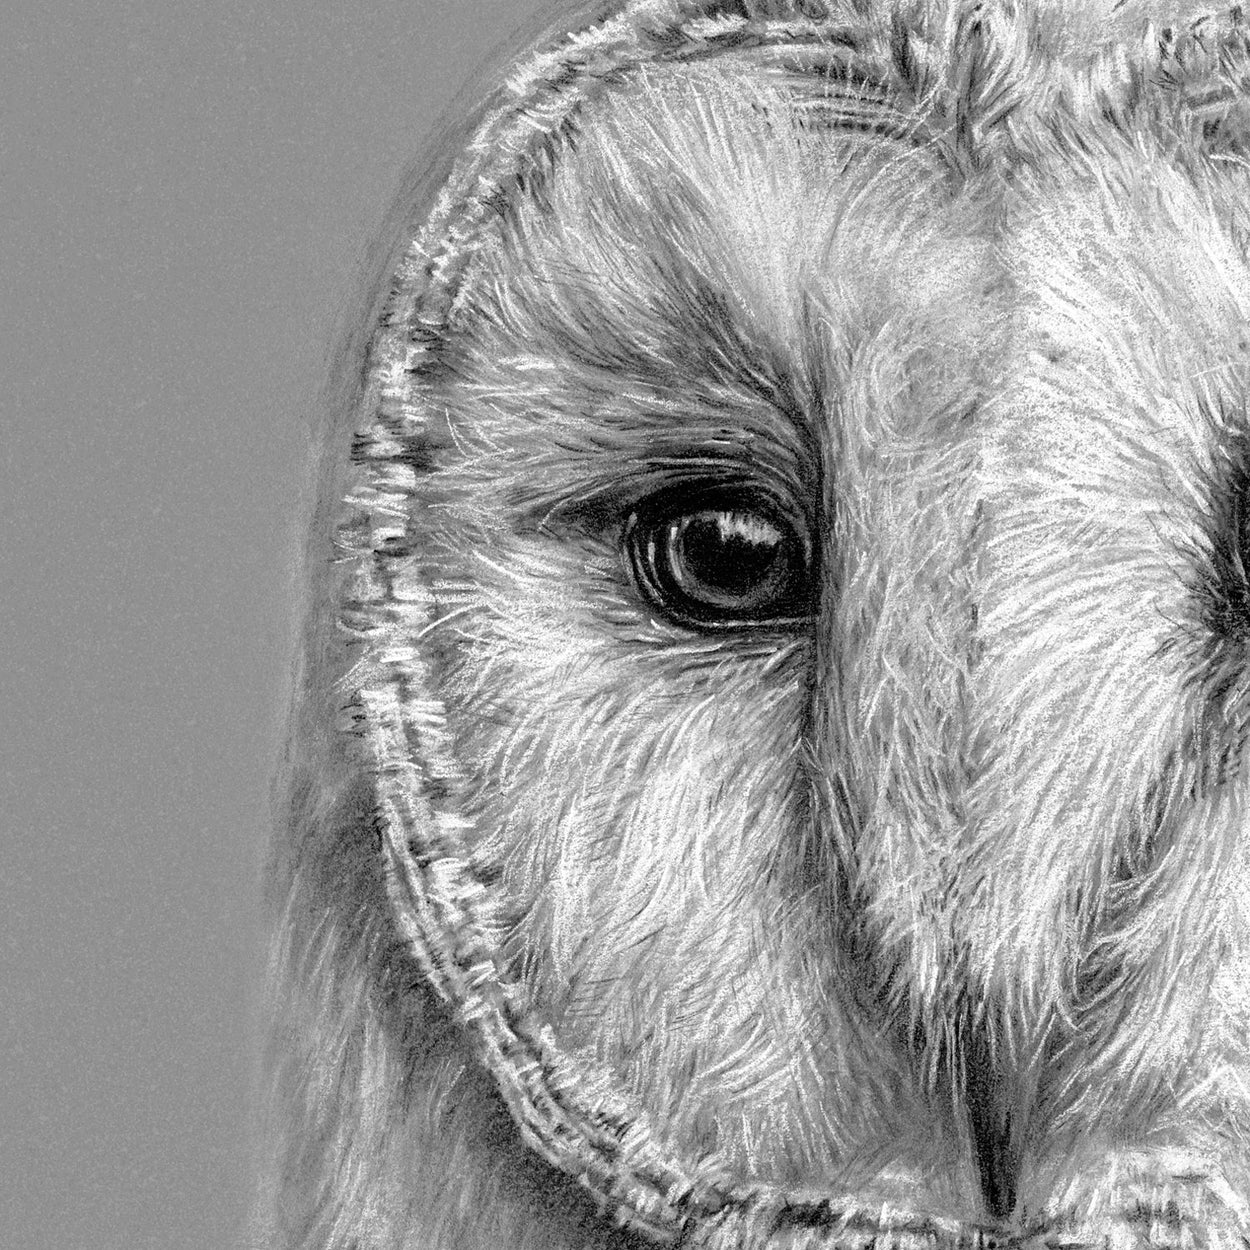 Barn Owl Drawing Close-up 1 - The Thriving Wild